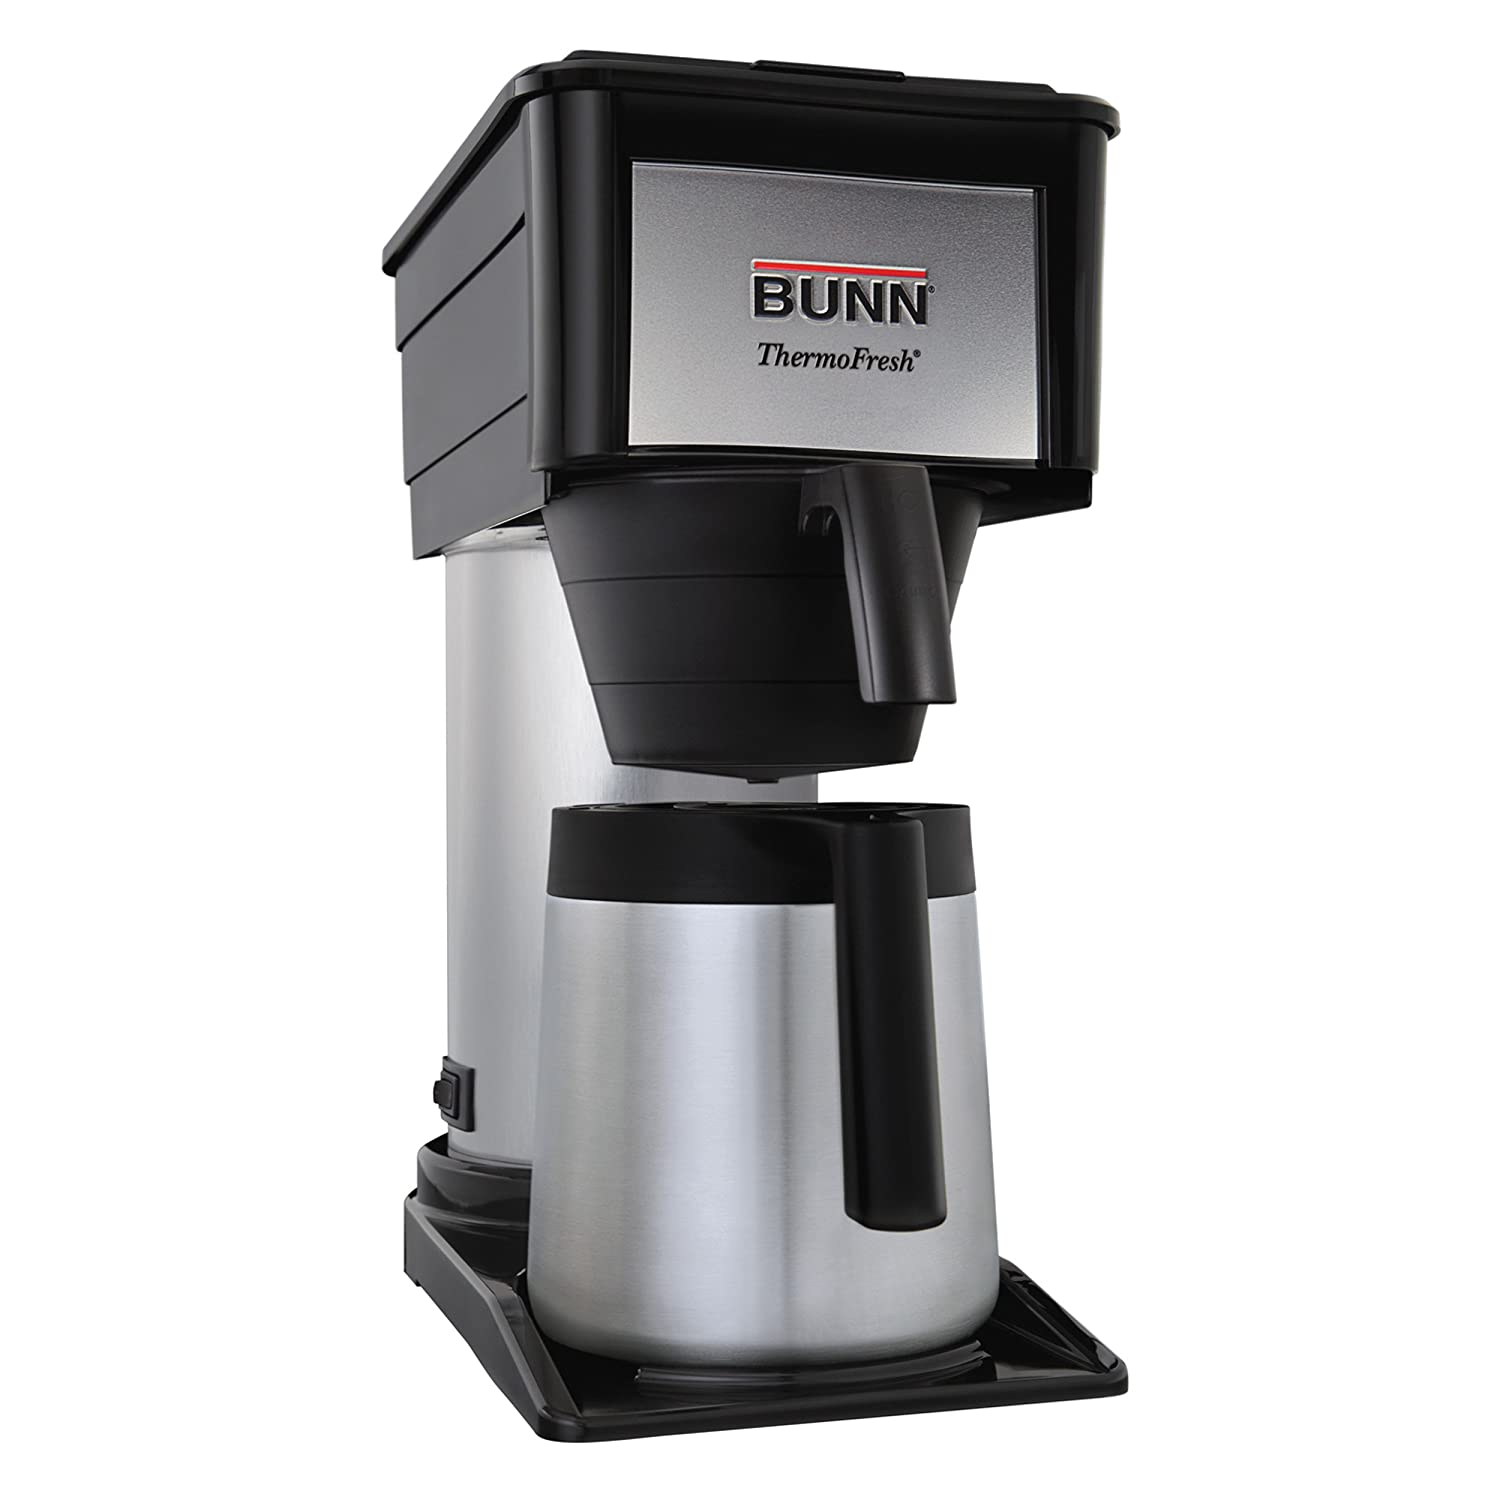 Bunn Coffee Maker 10 Cup Instructions : Bunn Coffee Pots: Makes a Perfect Cup of Coffee Quickly